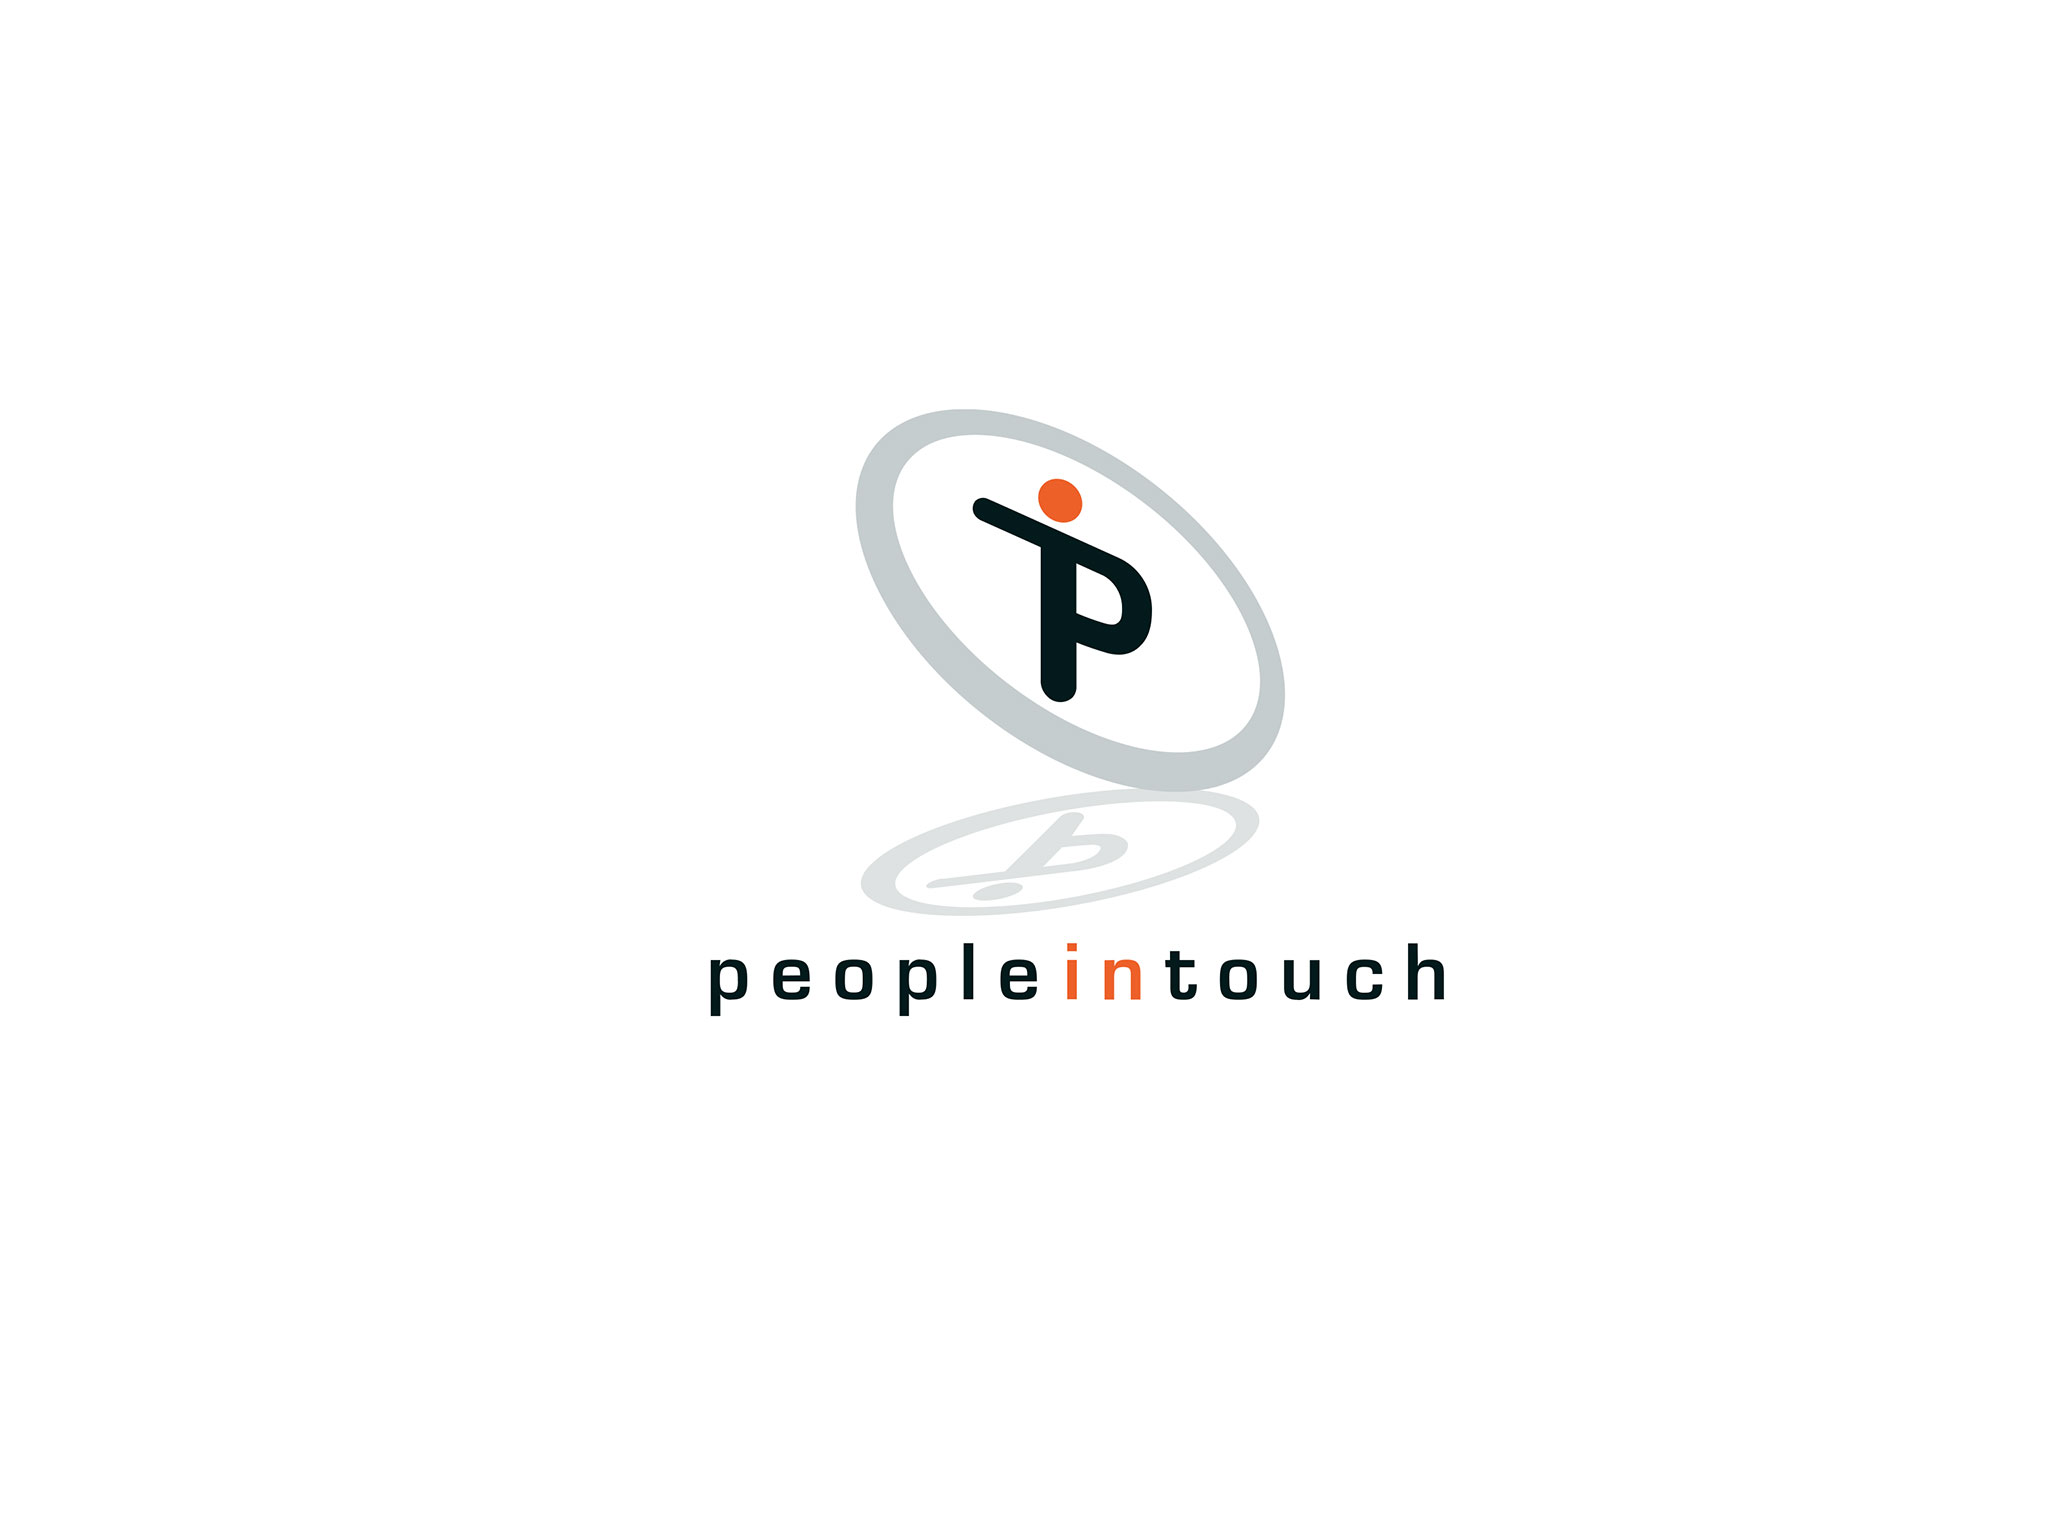 PEOPLE_INTOUCH_LOGO_OUD